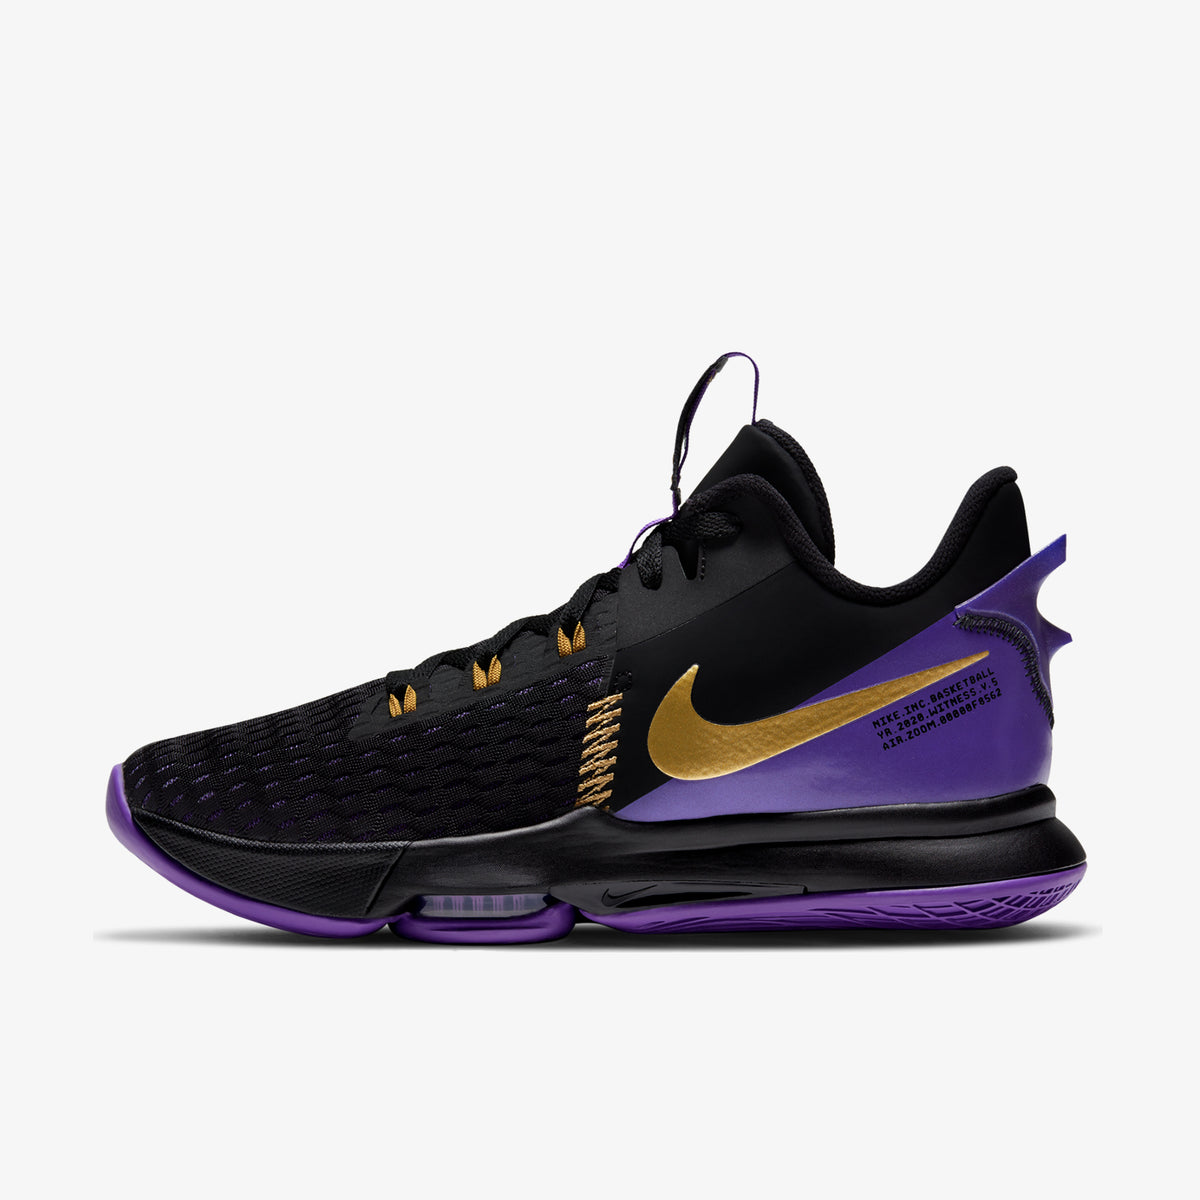 LeBron Witness V - 'Fierce Purple'